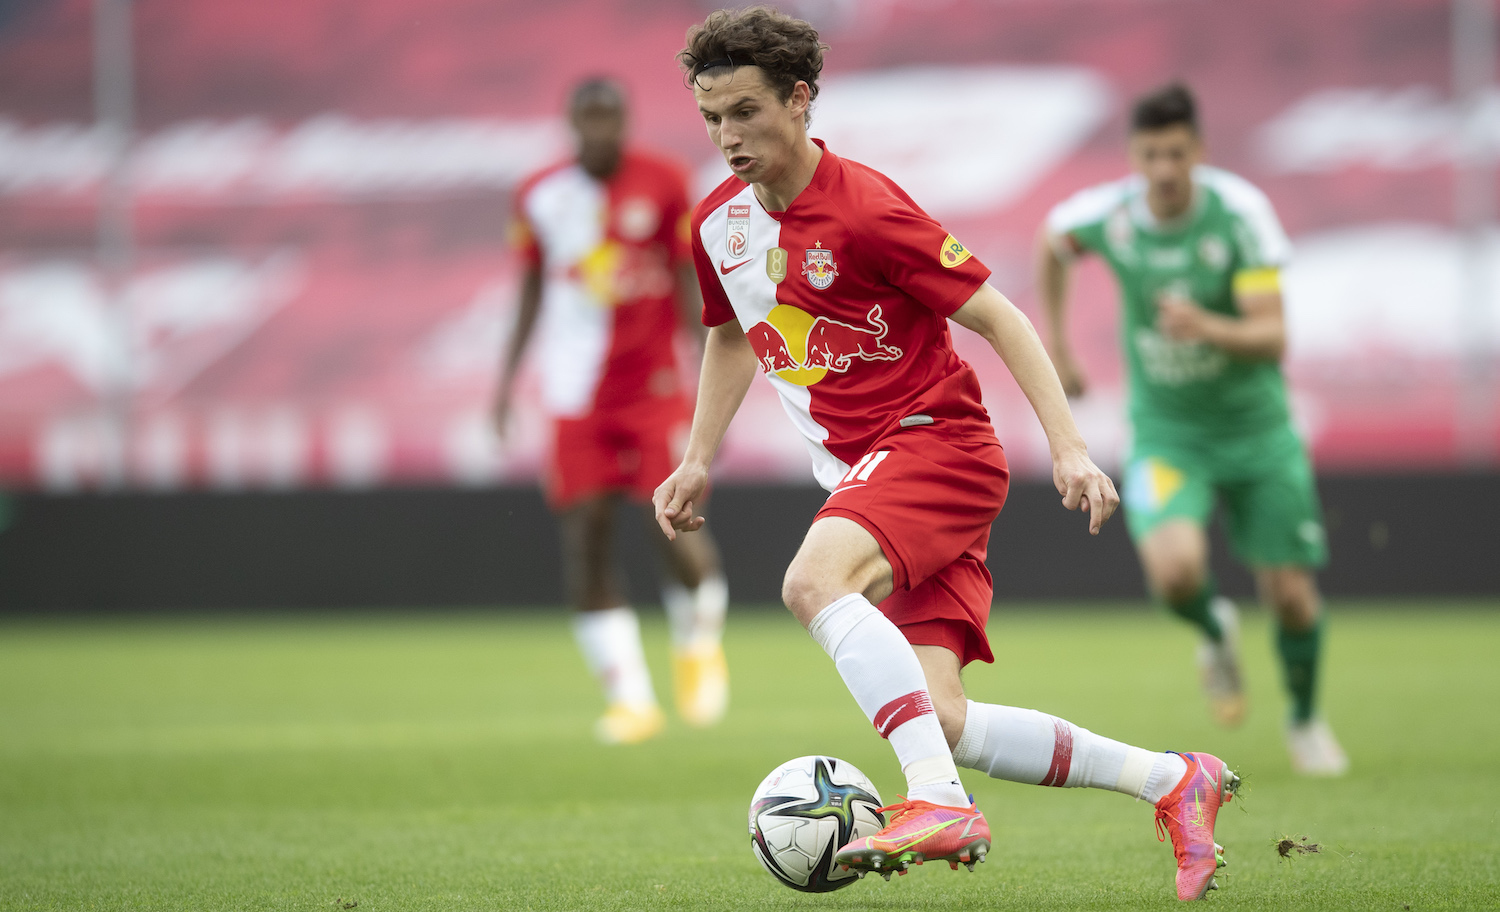 SALZBURG, AUSTRIA - MAY 22: Brenden Aaronson of FC Red Bull Salzburg controls the ball during the tipico Bundesliga match between RB Salzburg and WSG Tirol at Red Bull Arena on May 22, 2021 in Salzburg, Austria. (Photo by Andreas Schaad/Getty Images)